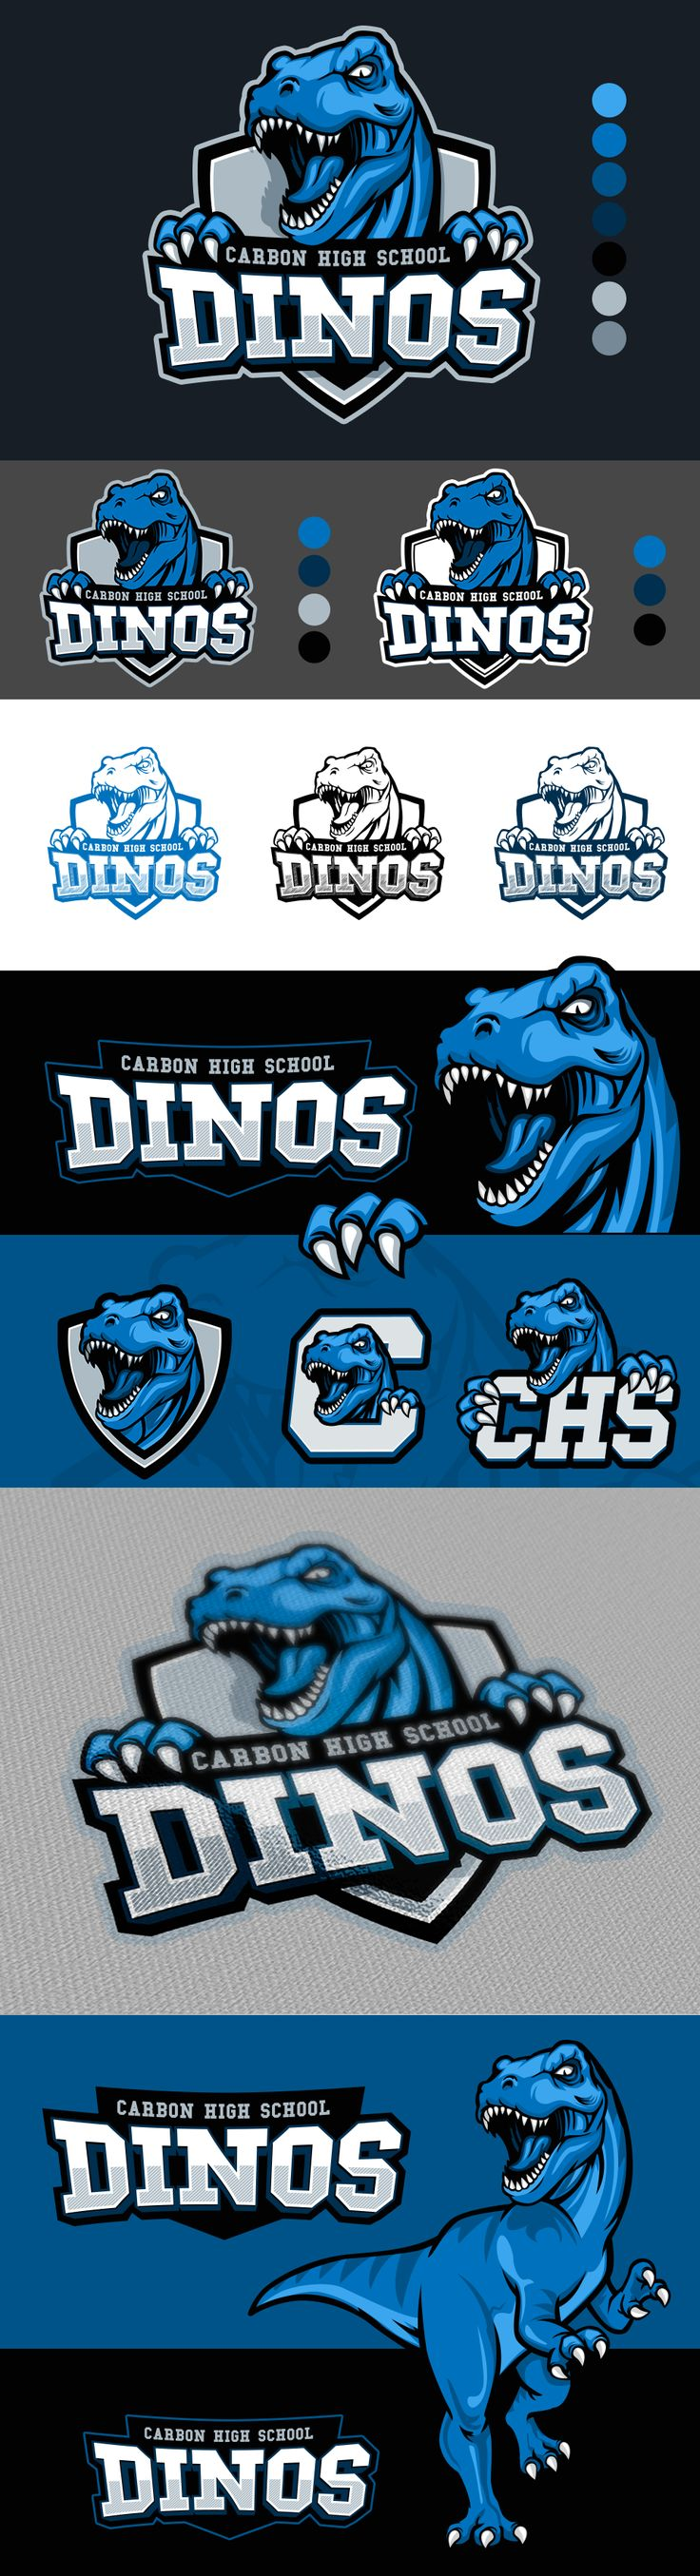 Carbon High School is a traditional high school in Carbon County Utah. The area is best known for coal mining and its many dinosaur fossils.